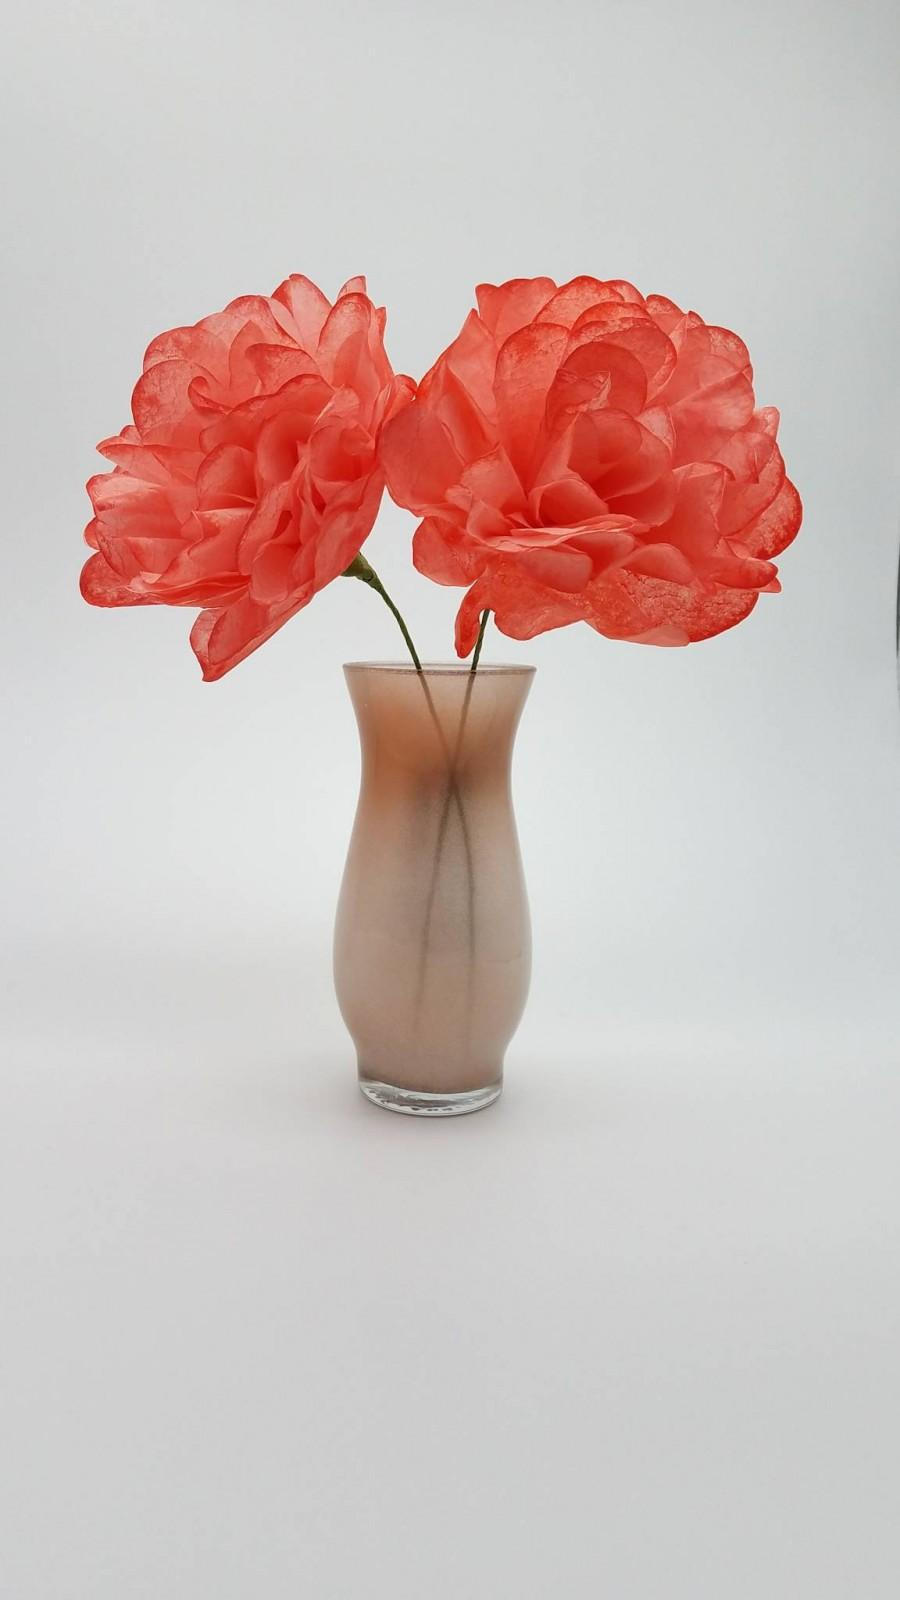 Mariage - Coral Paper Flowers-Wedding Flowers,Paper Flower Bouquet,Bridesmaid Bouquet,Bridal Shower,Baby Shower,Centerpiece,Cake Topper,Bridal Bouquet